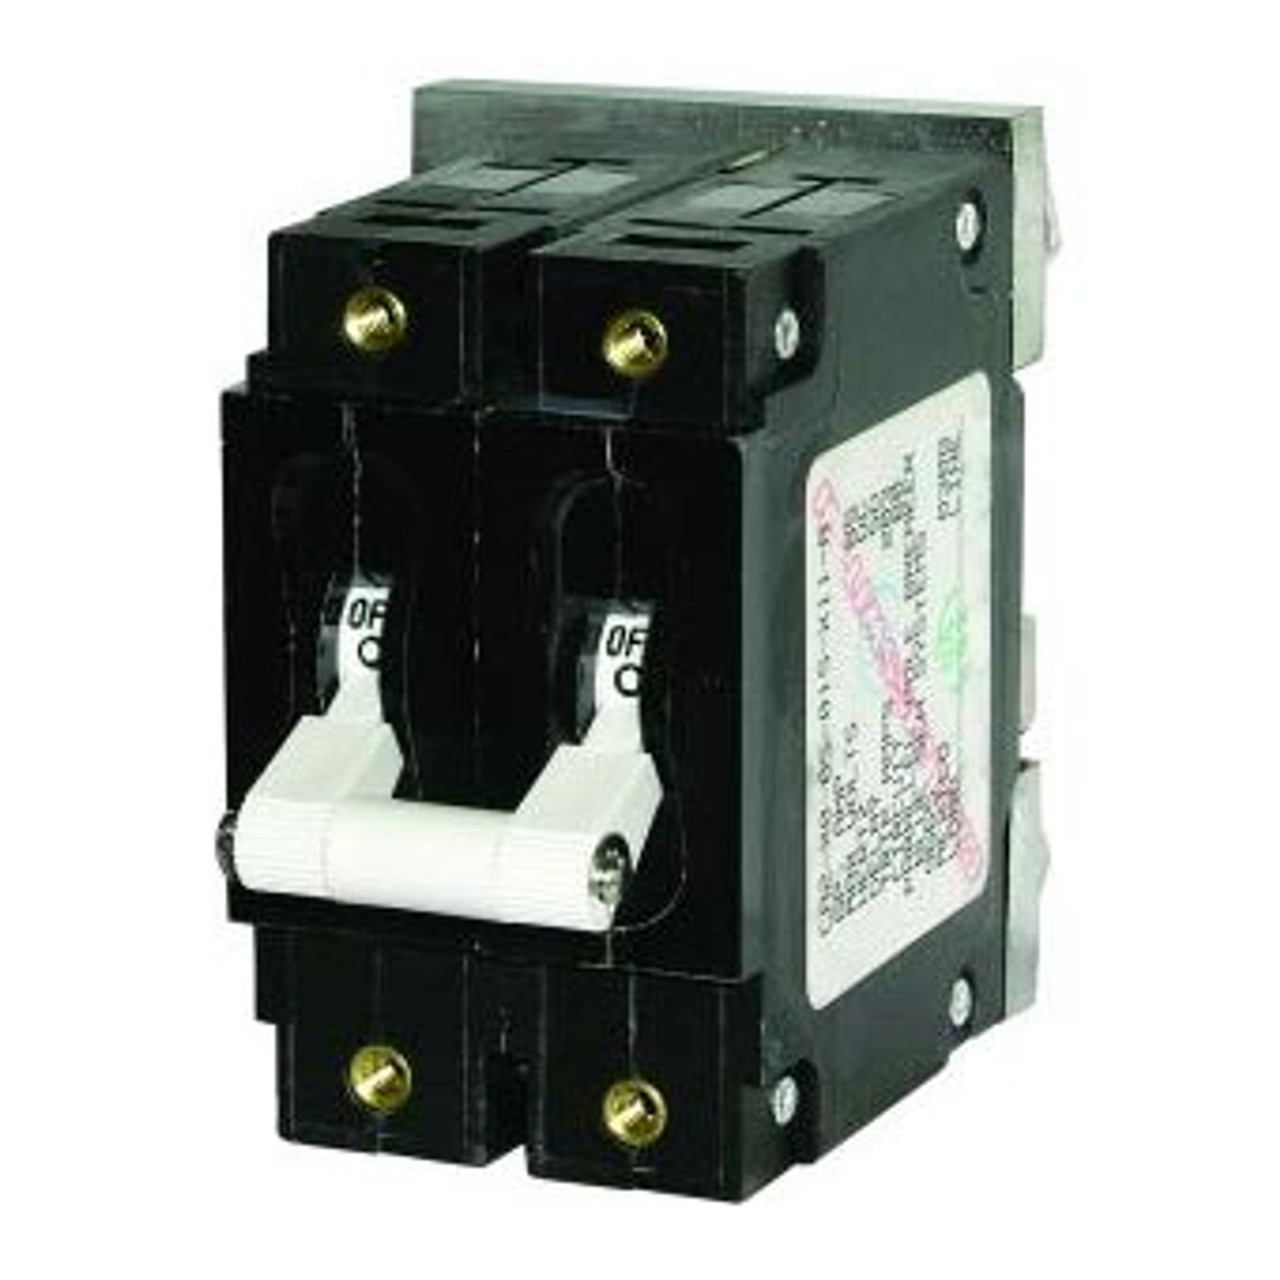 CIRCUIT BREAKER WHT 20AMP A-SERIES TOGGLE DBL POLE